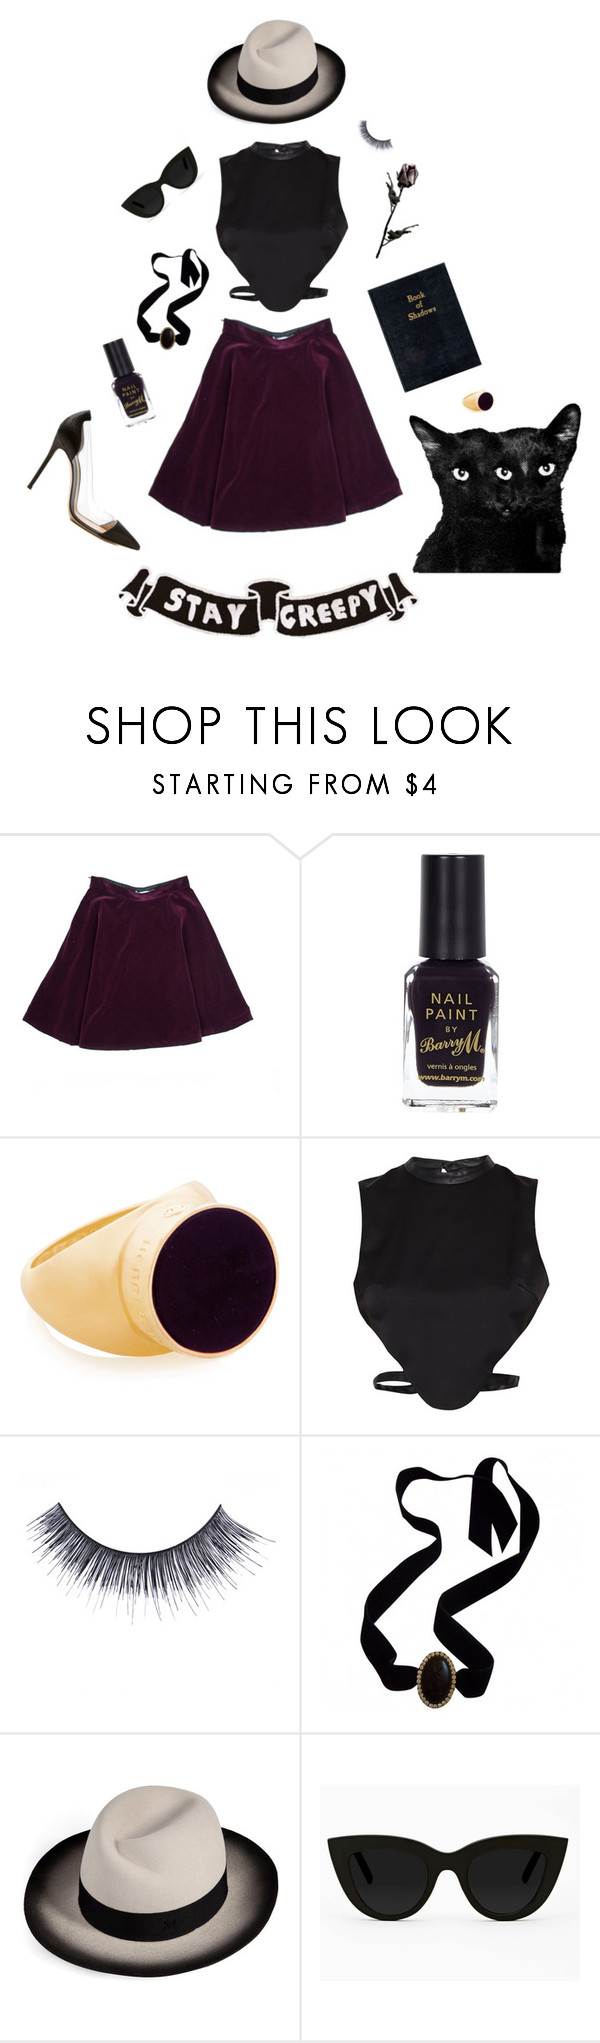 """""""October"""" by kueak ❤ liked on Polyvore featuring River Island, Henri Bendel, Morgan, MAKE UP FOR EVER, Yves Saint Laurent, Maison Michel, Quay and Gianvito Rossi"""